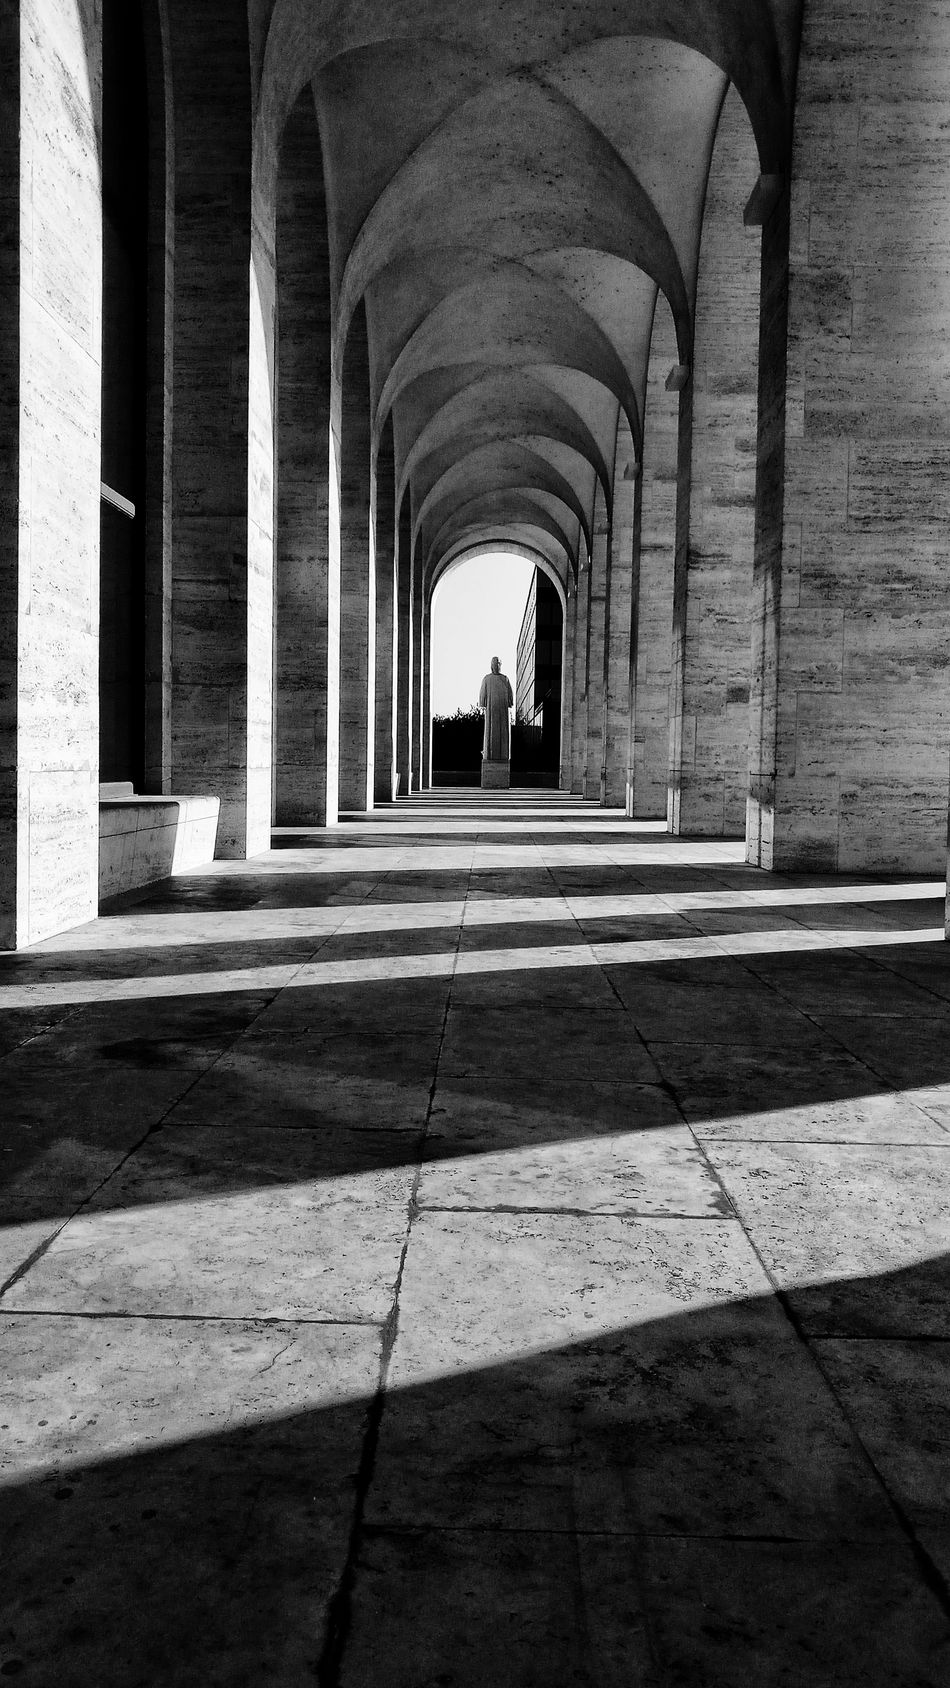 Monochrome Italy Roma Rome Statues Day Architecture Outdoors No People Low Angle View Concrete Floor Built Structure Architecture Architectural Column Arch The Way Forward History Indoors